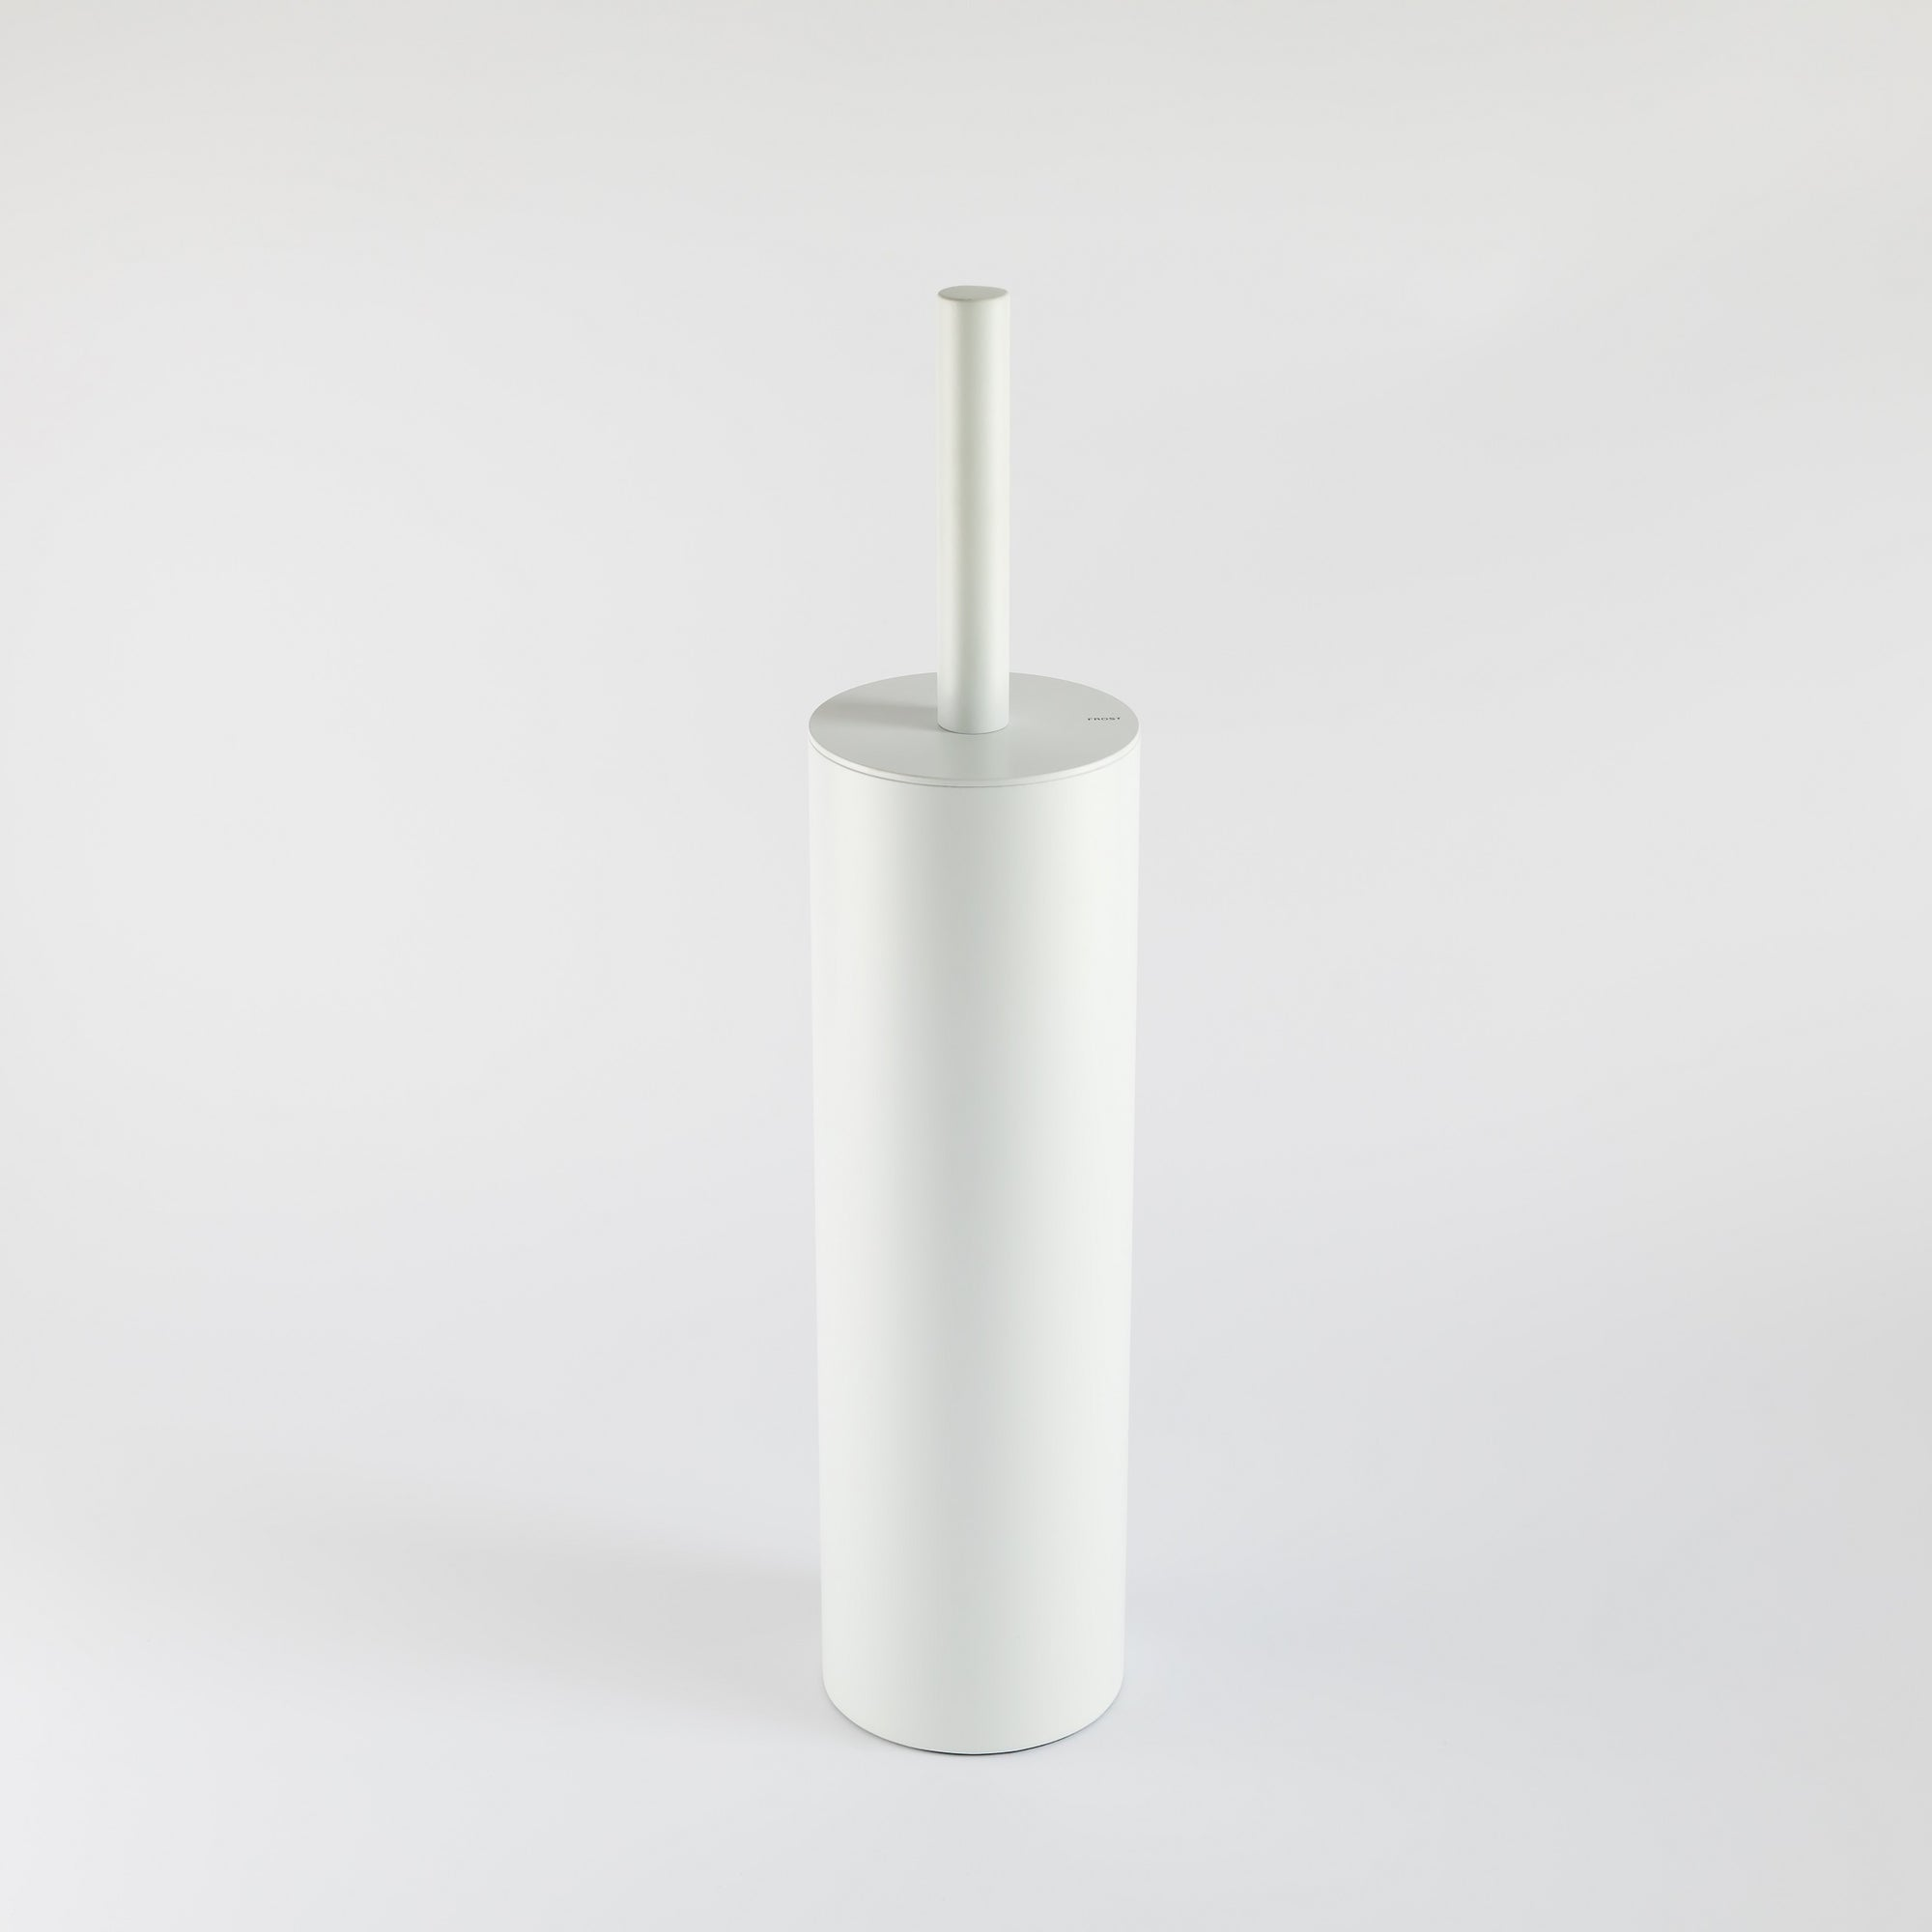 Nova2 Toilet Brush- White